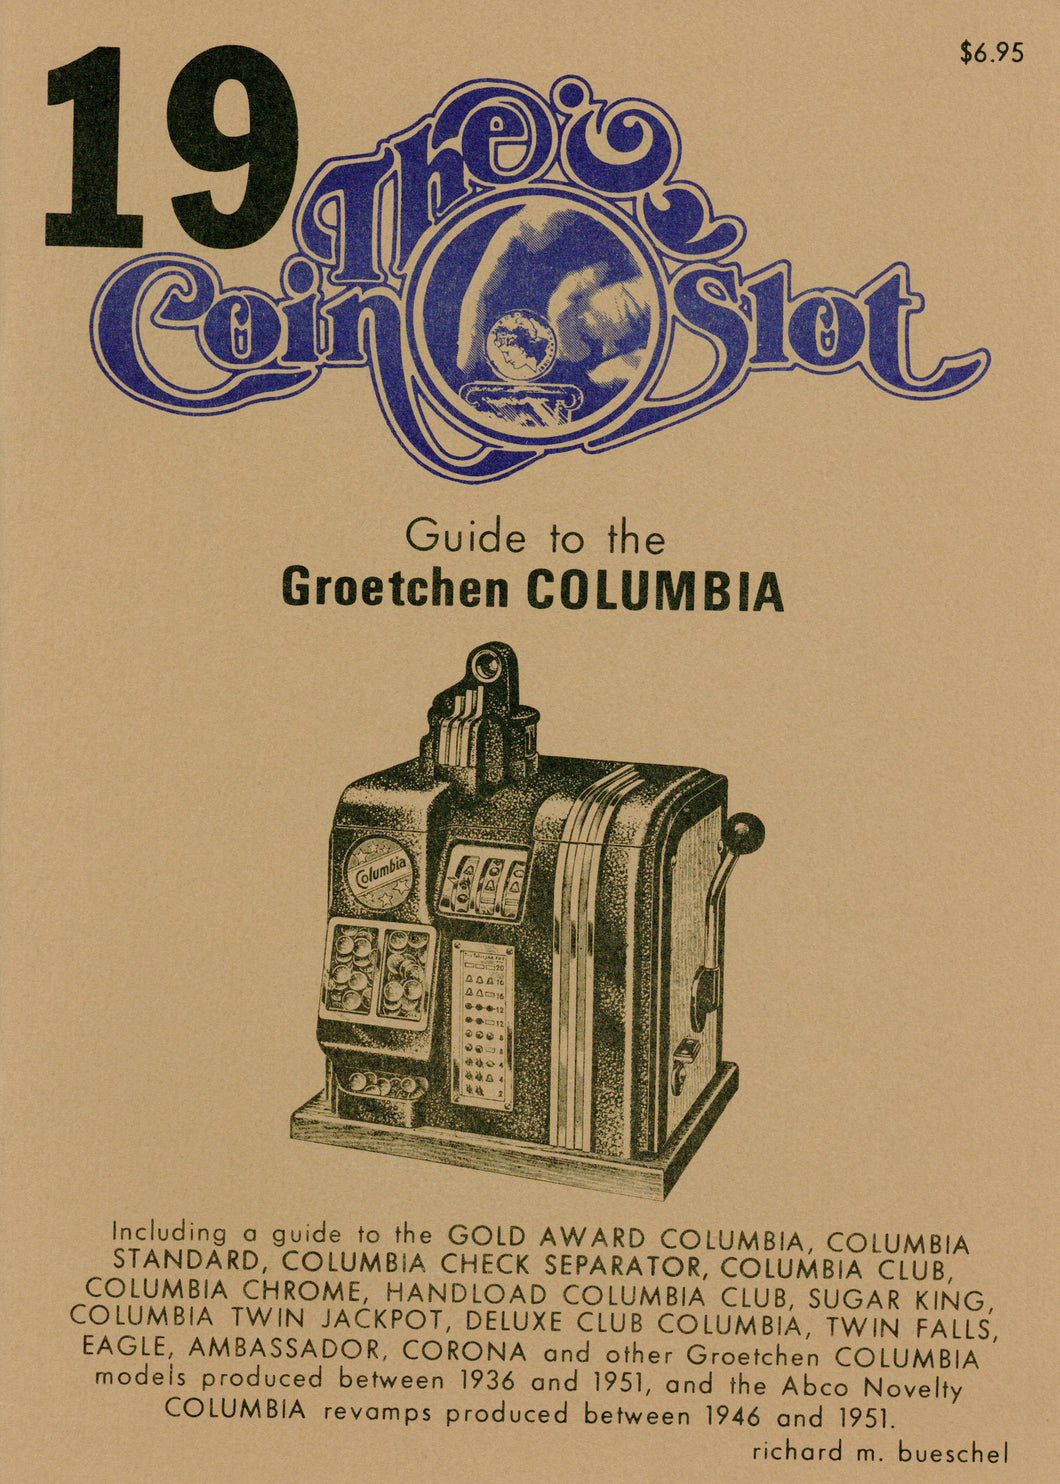 Coin Slot #19. Guide to the Groetchen Columbia